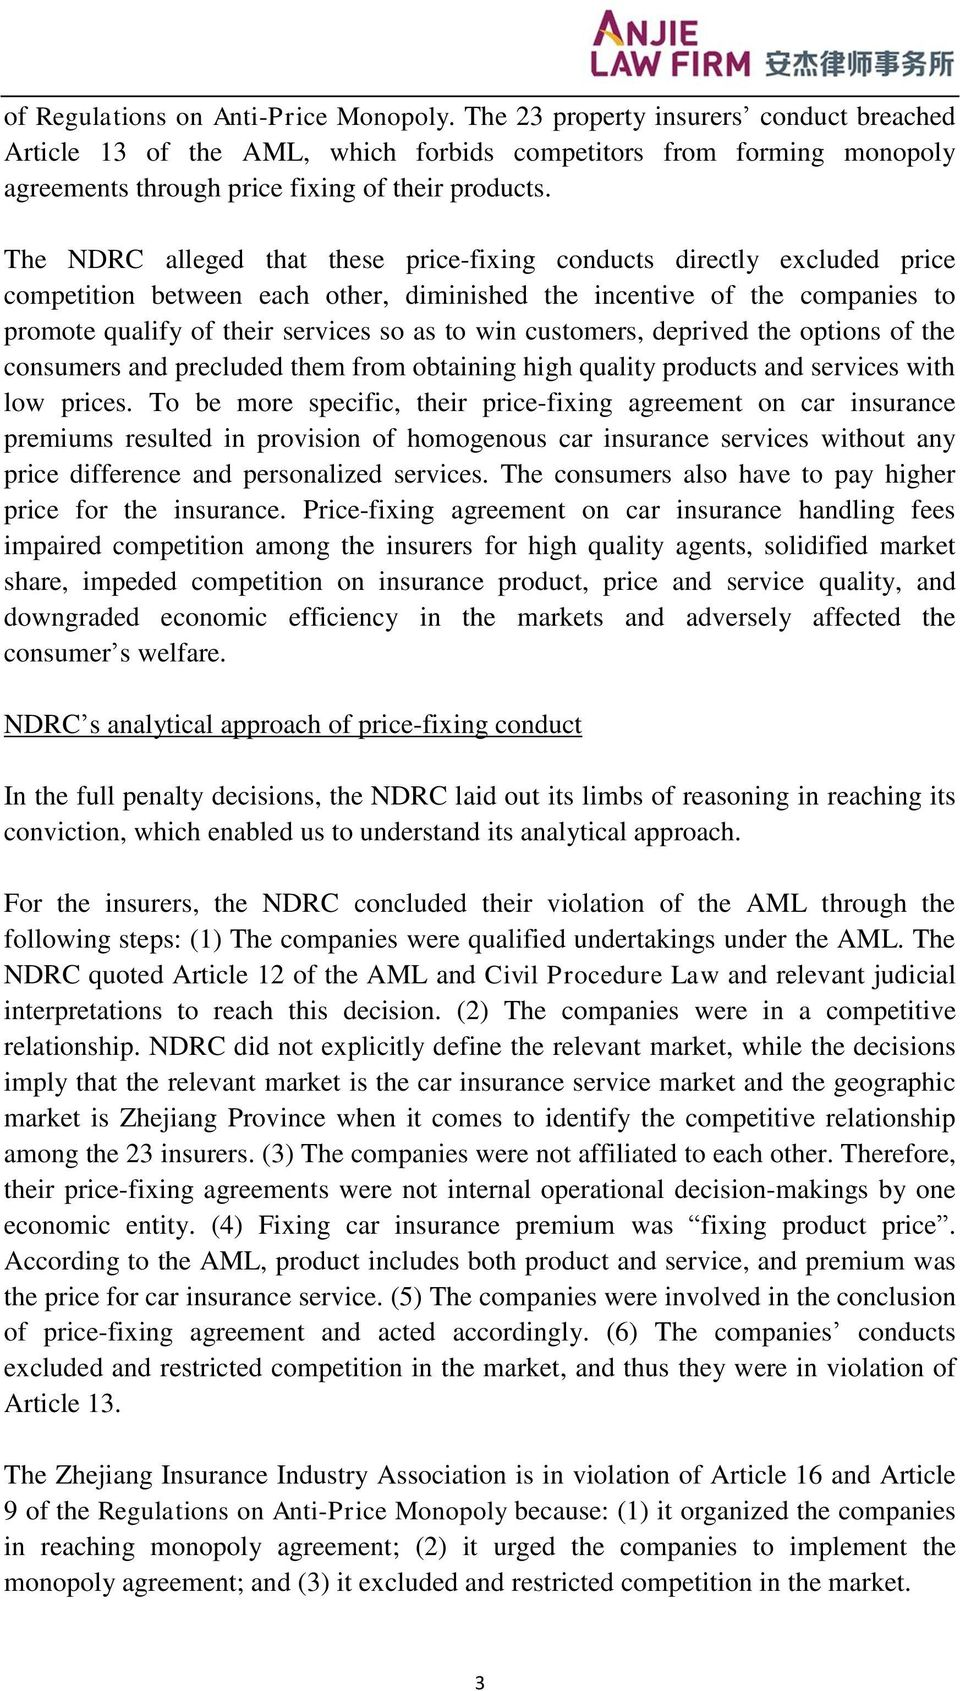 The NDRC alleged that these price-fixing conducts directly excluded price competition between each other, diminished the incentive of the companies to promote qualify of their services so as to win